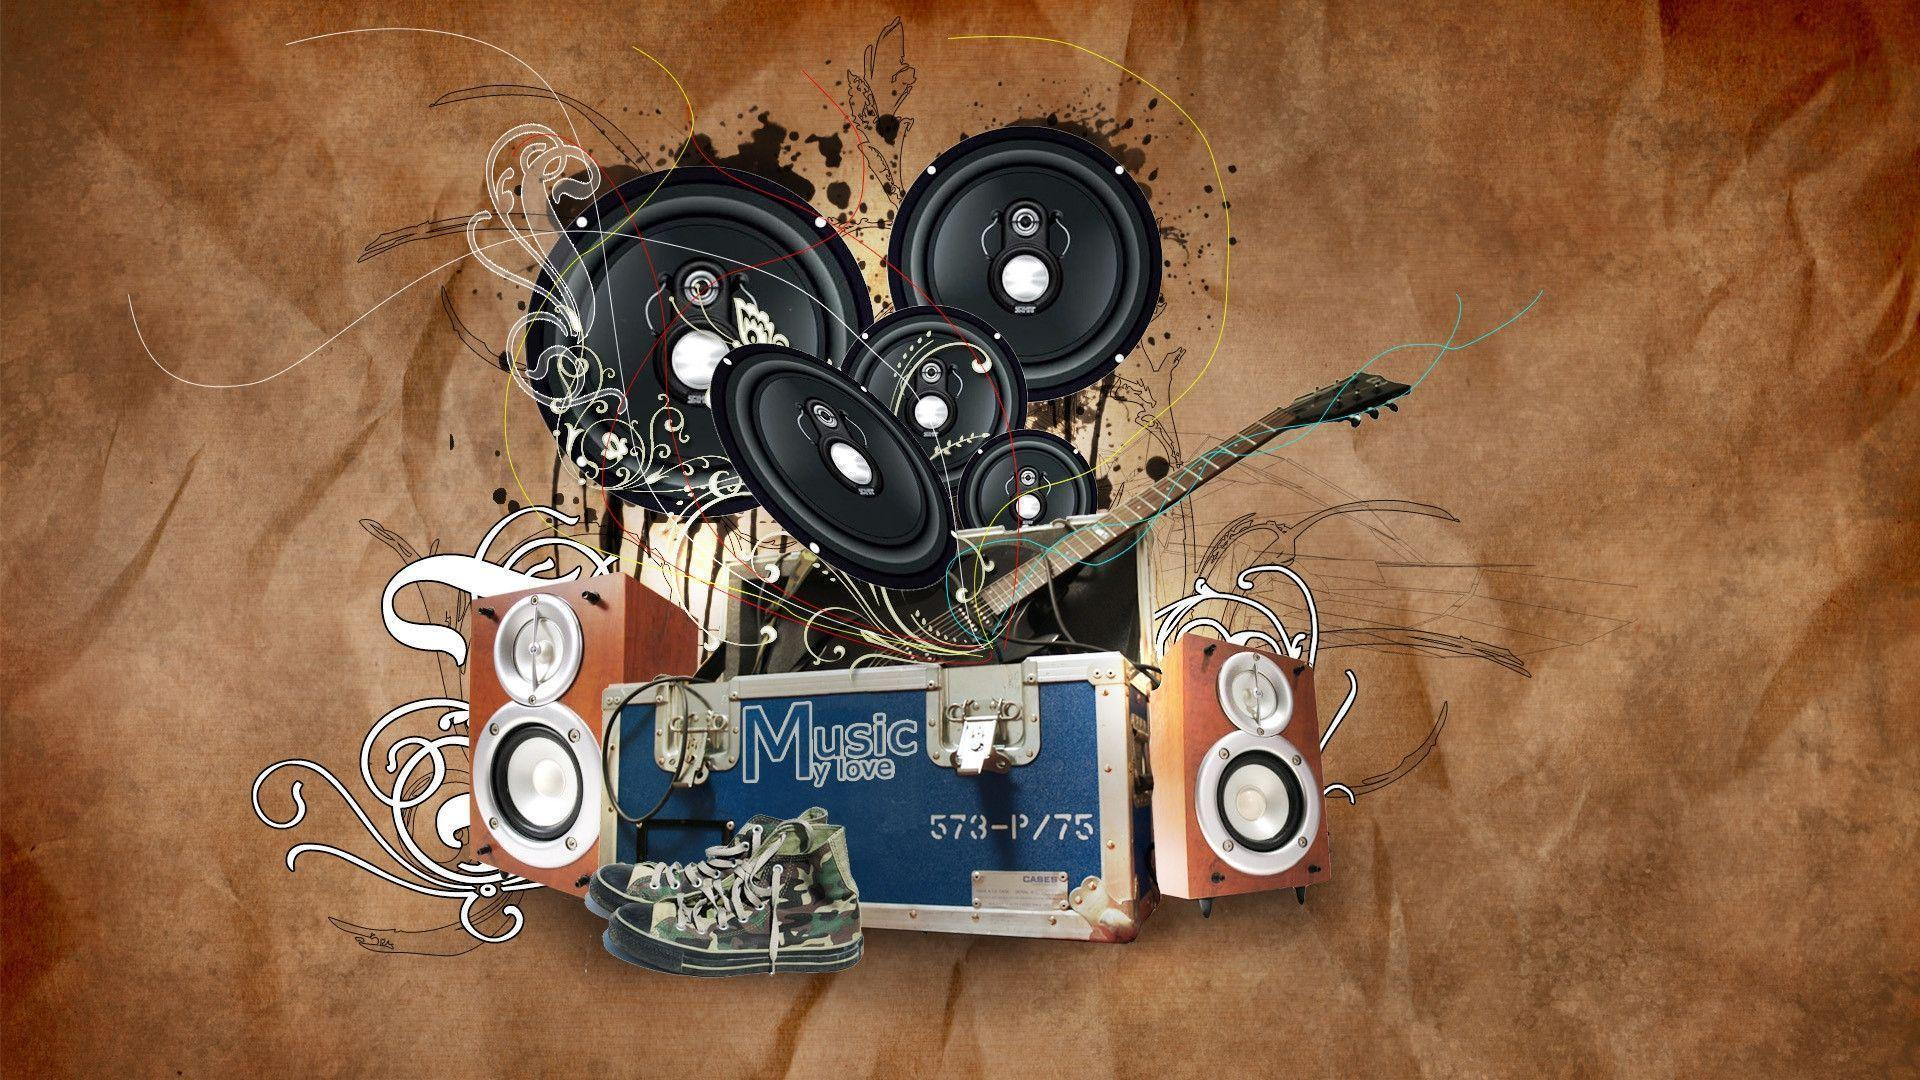 Wallpapers Hd 3d Music: Music Wallpapers 1920x1080